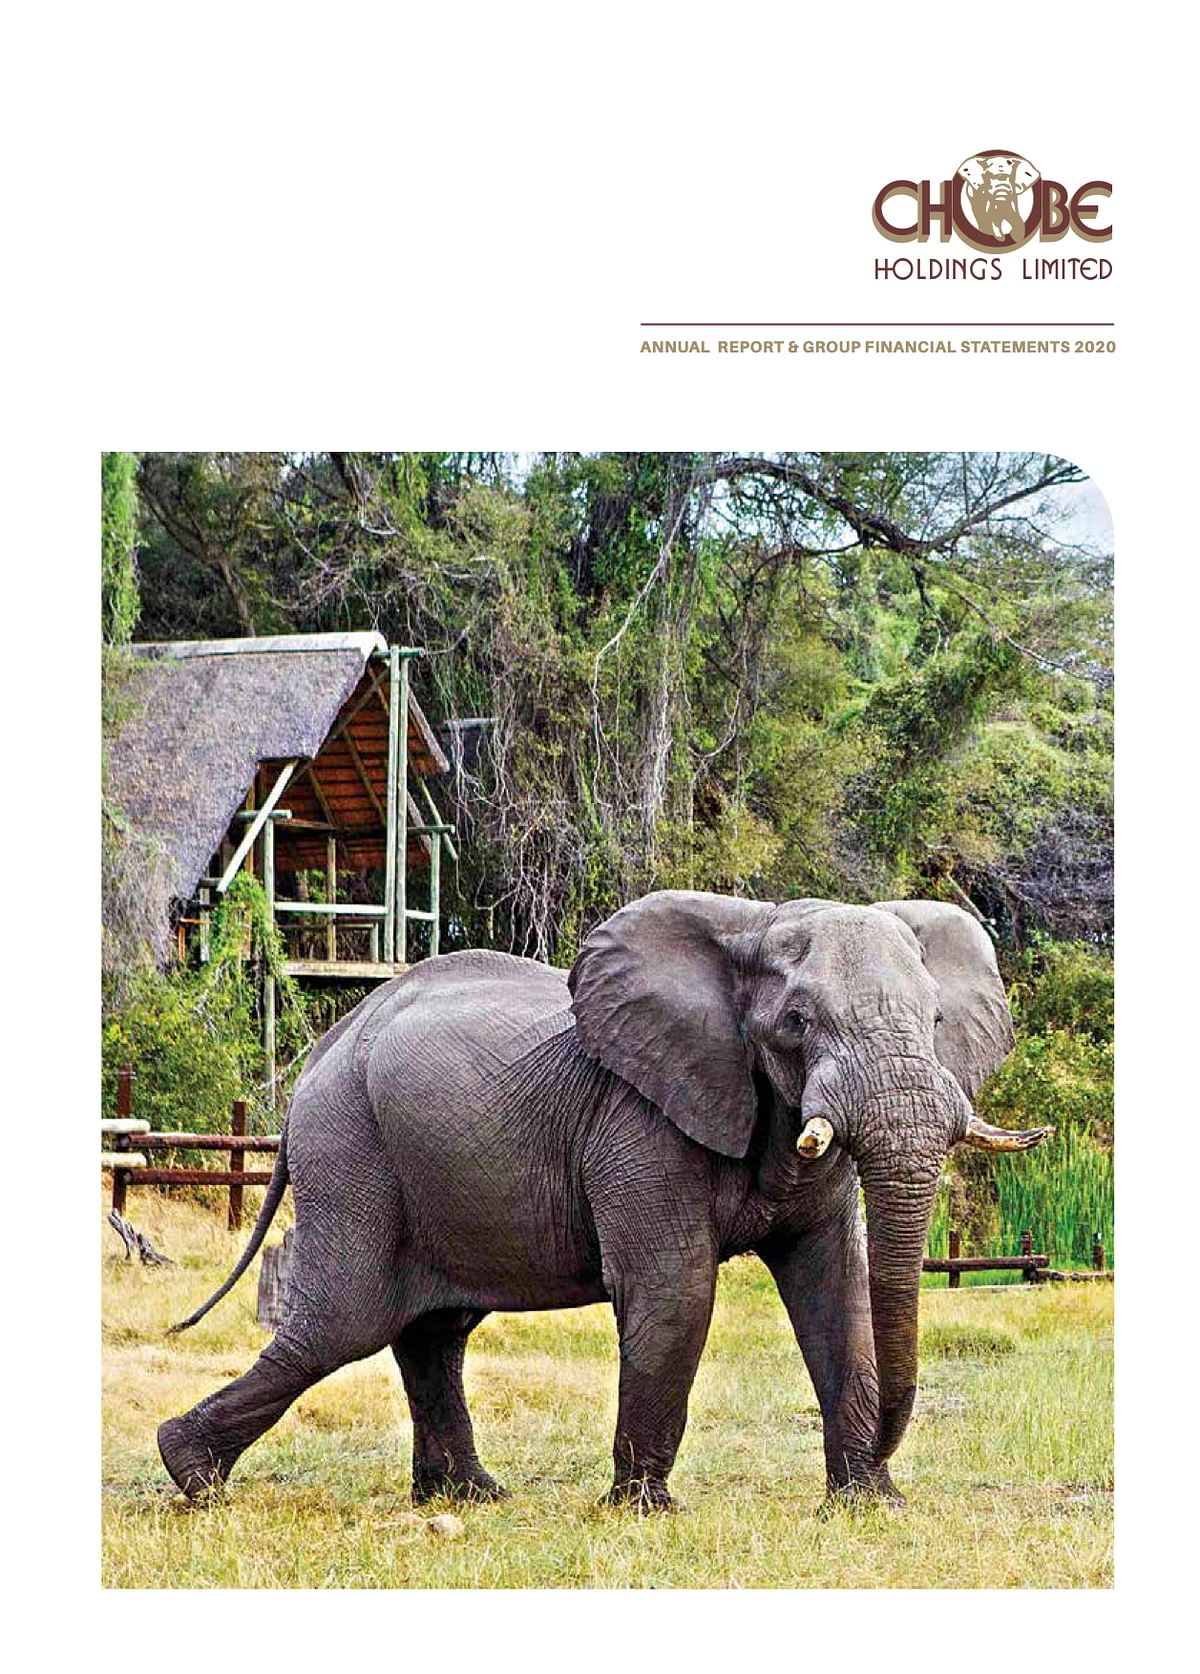 Chobe Holdings Limited Annual Report 2020